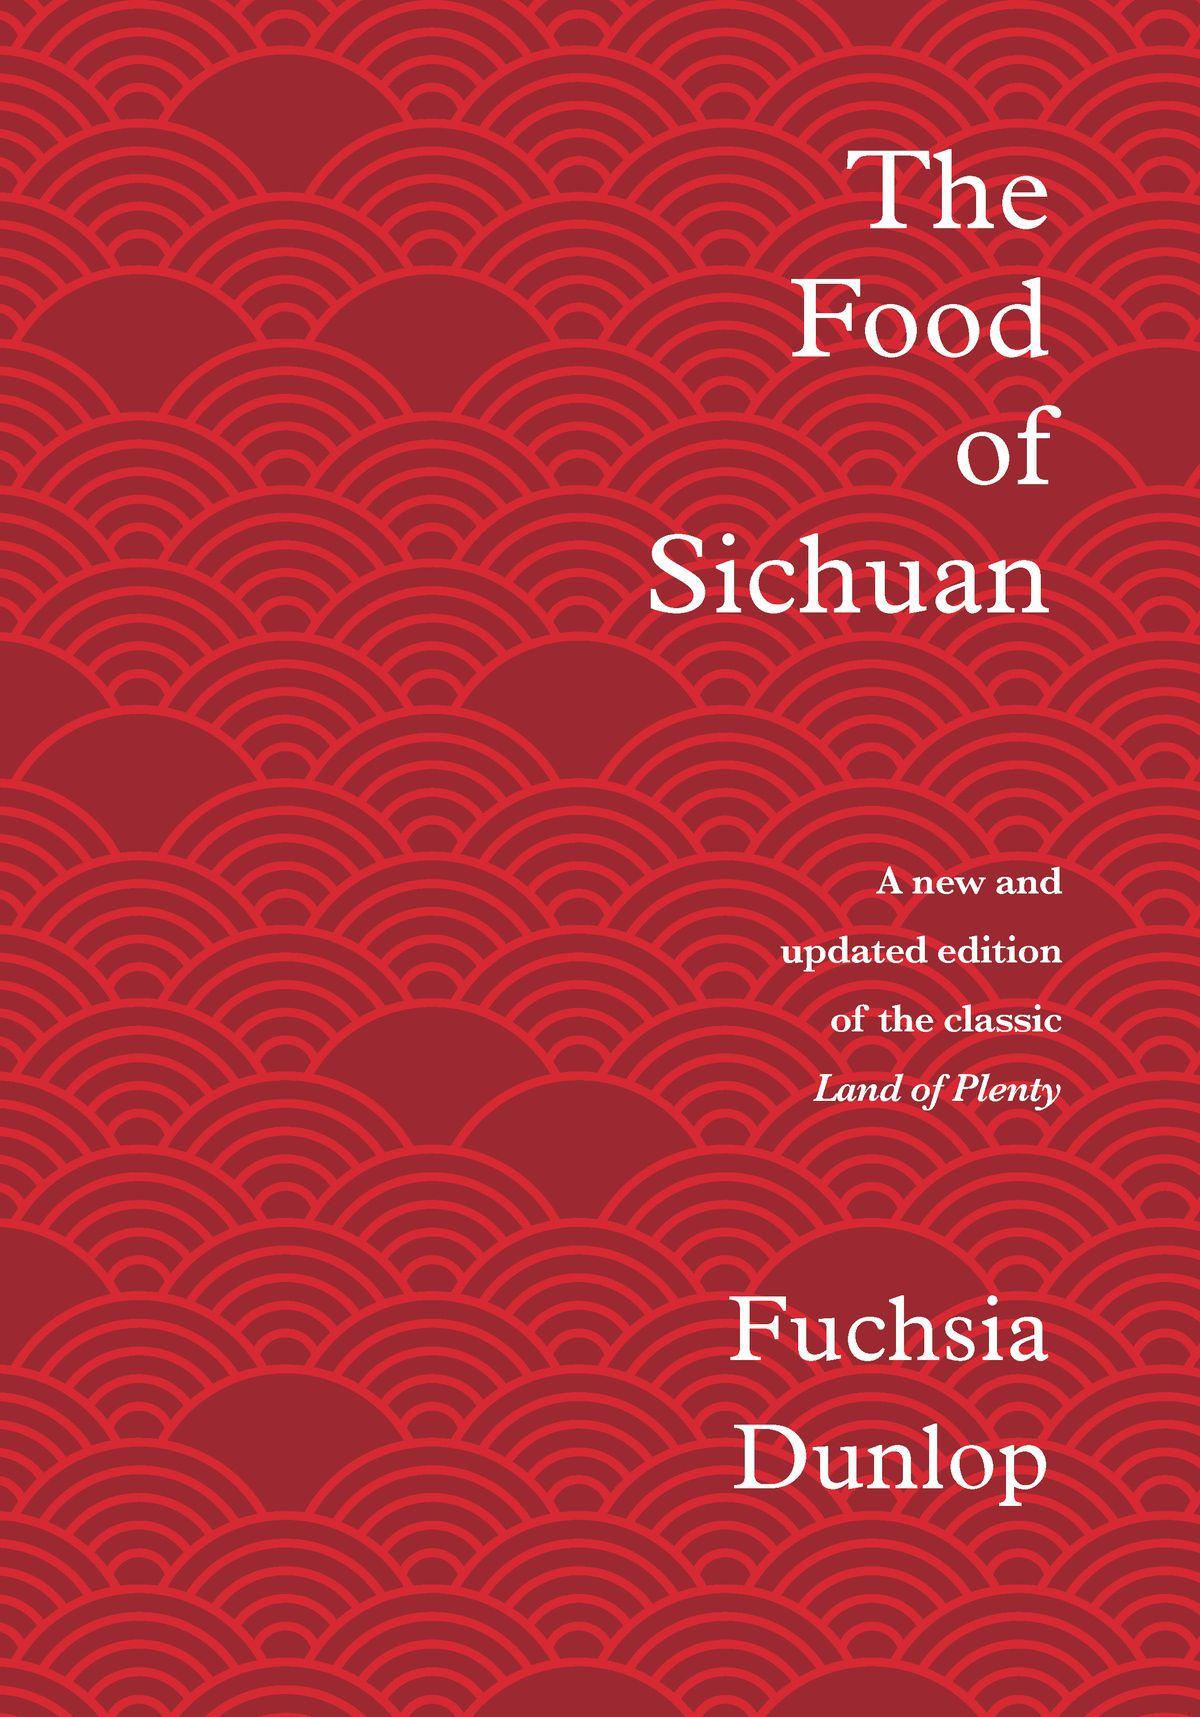 """""""The Food of Sichuan"""" book cover, with deep red cover with simple repeating graphic pattern"""